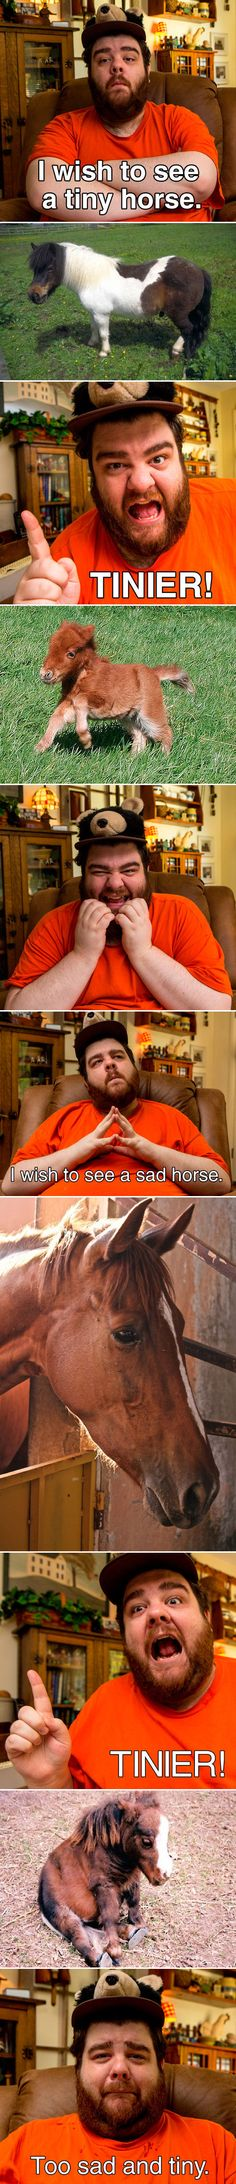 oh my gosh why is this so funny? Read More Funny: wdb.es/ - Horses Funny - Funny Horse Meme - - oh my gosh why is this so funny? Read More Funny: wdb.es/ The post oh my gosh why is this so funny? Read More Funny: wdb.es/ appeared first on Gag Dad. Funny Cute, Really Funny, Hilarious, Haha, Tiny Horses, Funny Memes, Jokes, Have A Laugh, Laughing So Hard